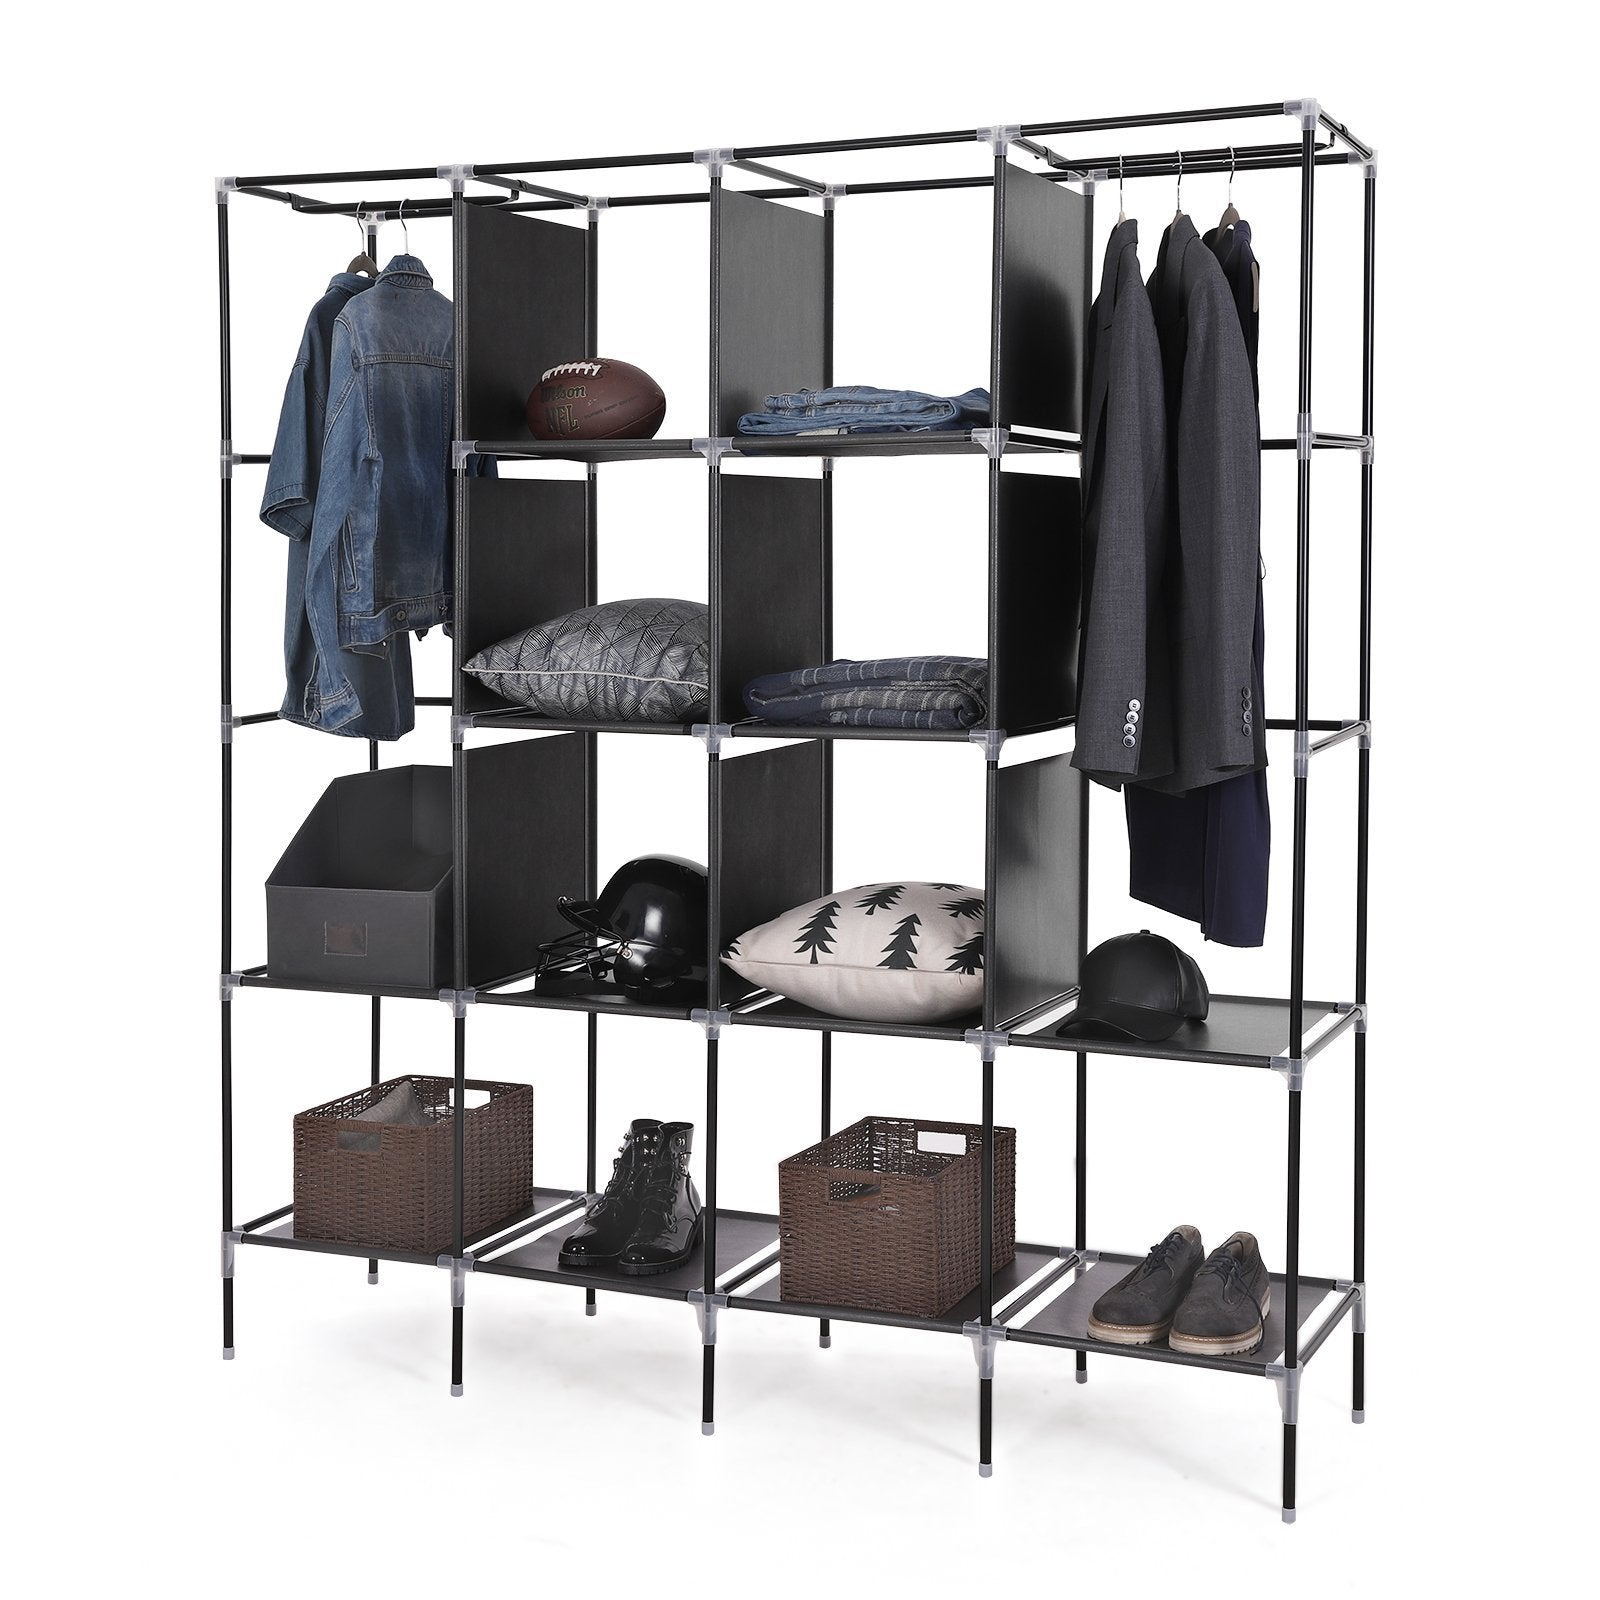 Organize with songmics 67 inch wardrobe armoire closet clothes storage rack 12 shelves 4 side pockets quick and easy to assemble black uryg44h